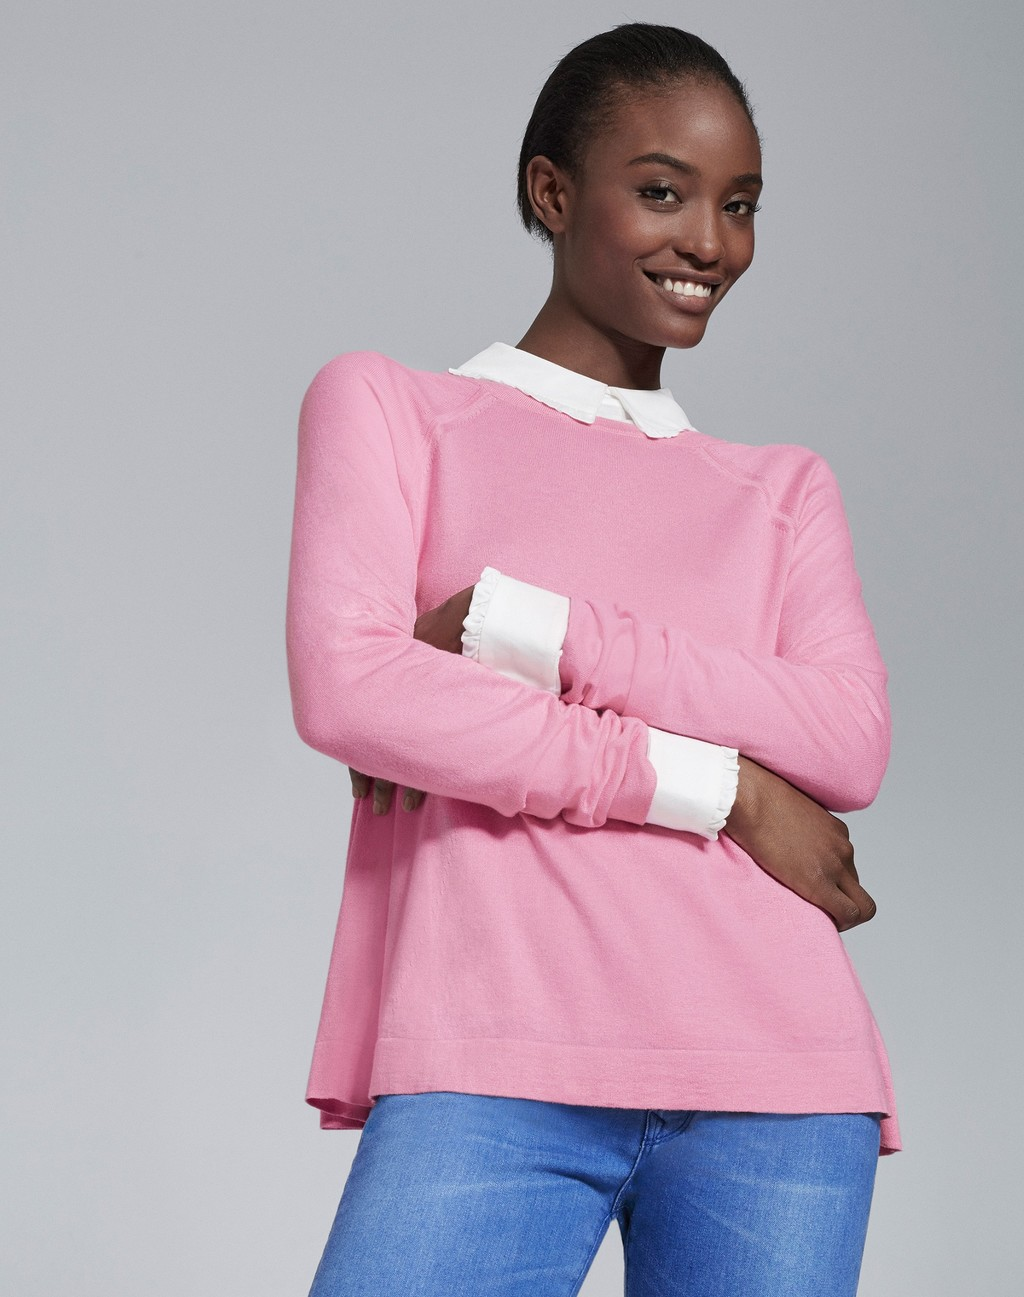 Frill Collar Layering Shirt White - style: standard; secondary colour: white; predominant colour: pink; occasions: casual, creative work; length: standard; fibres: cotton - mix; fit: loose; neckline: no opening/shirt collar/peter pan; sleeve length: long sleeve; sleeve style: standard; texture group: knits/crochet; pattern type: knitted - fine stitch; pattern size: standard; pattern: colourblock; season: a/w 2015; wardrobe: highlight